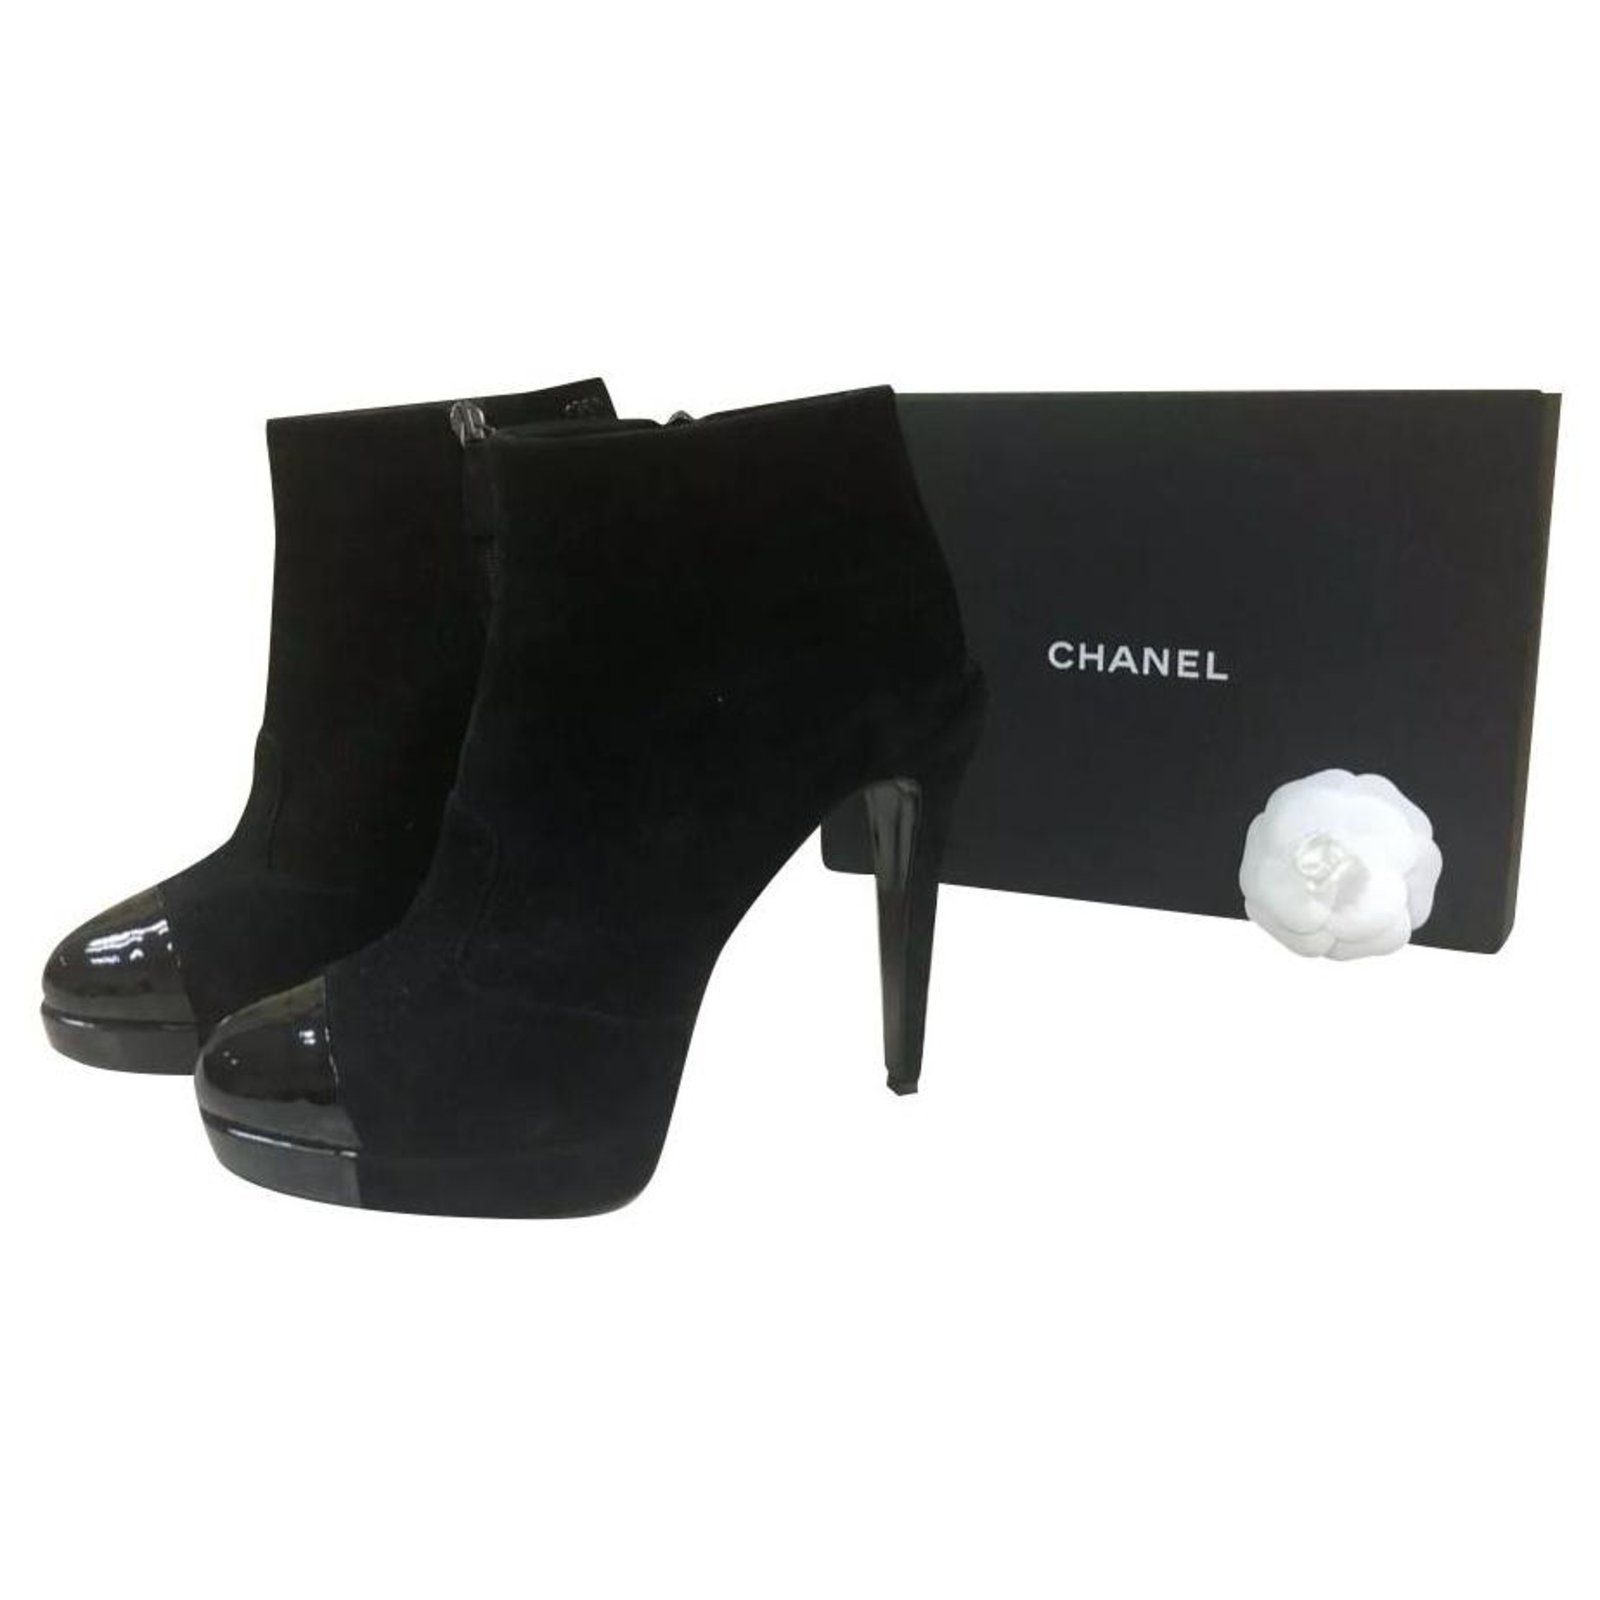 Chanel Chanel Black Suede Patent